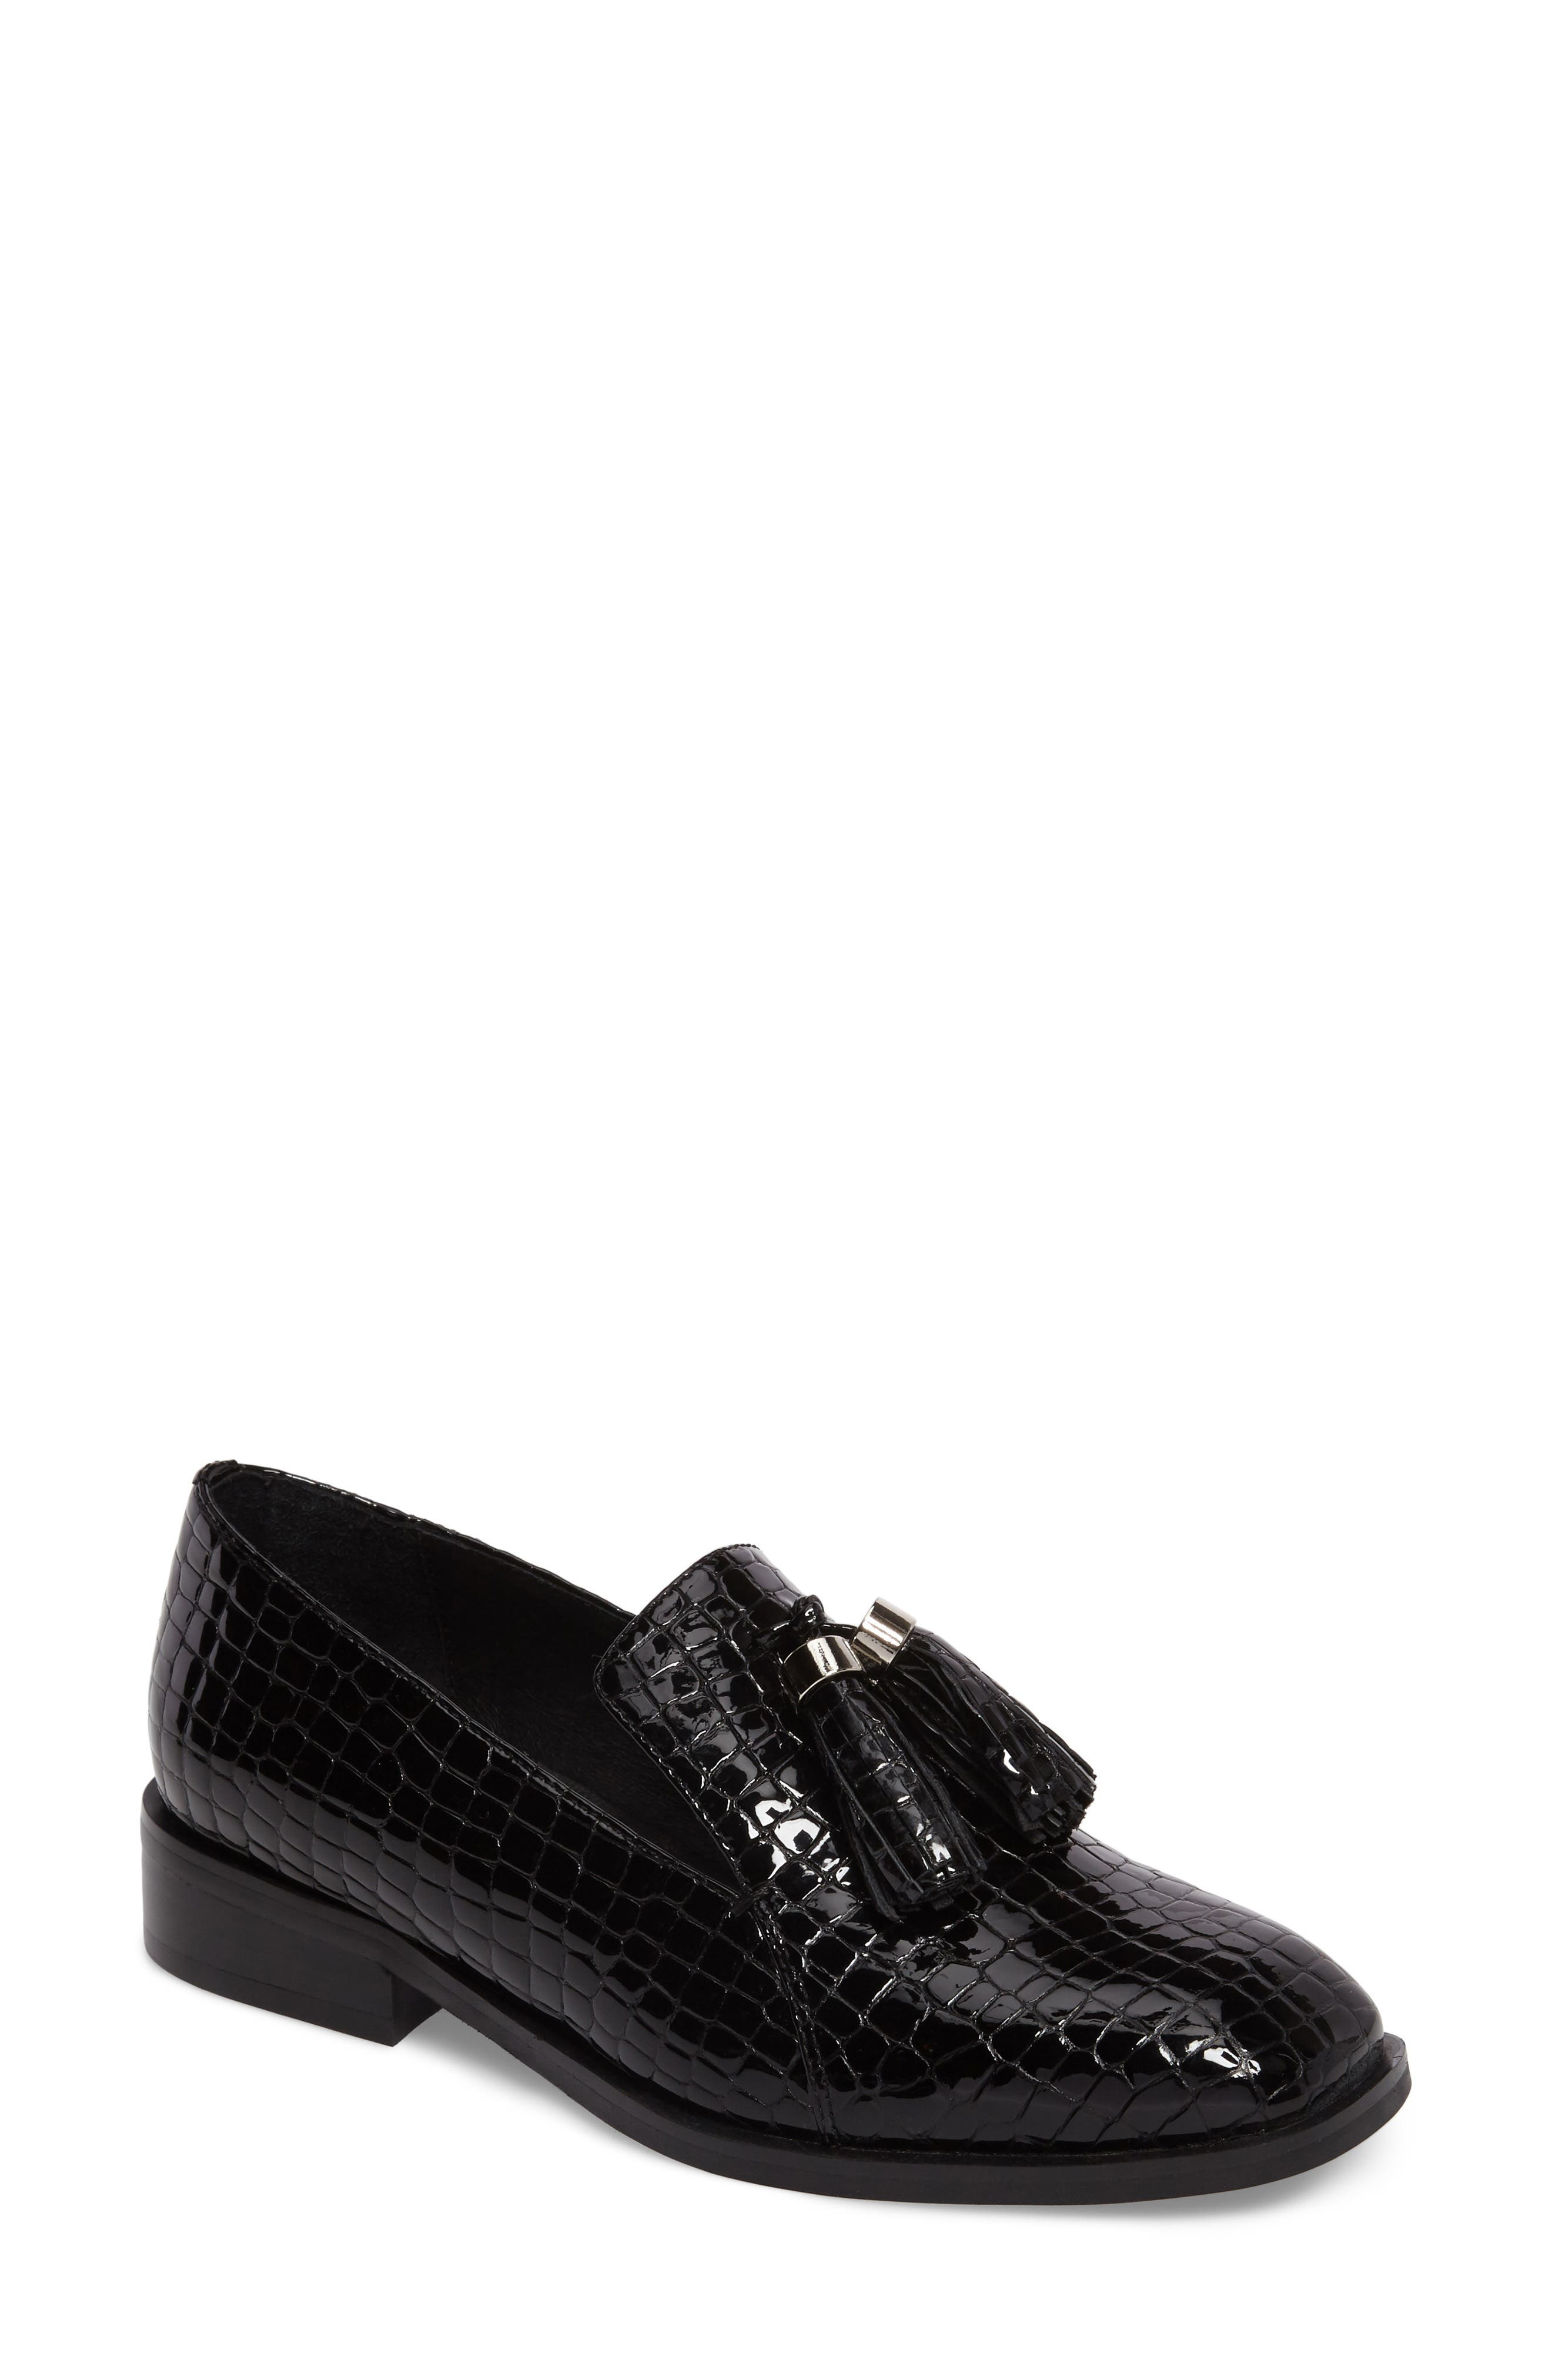 'Lawford' Tassel Loafer,                             Main thumbnail 2, color,